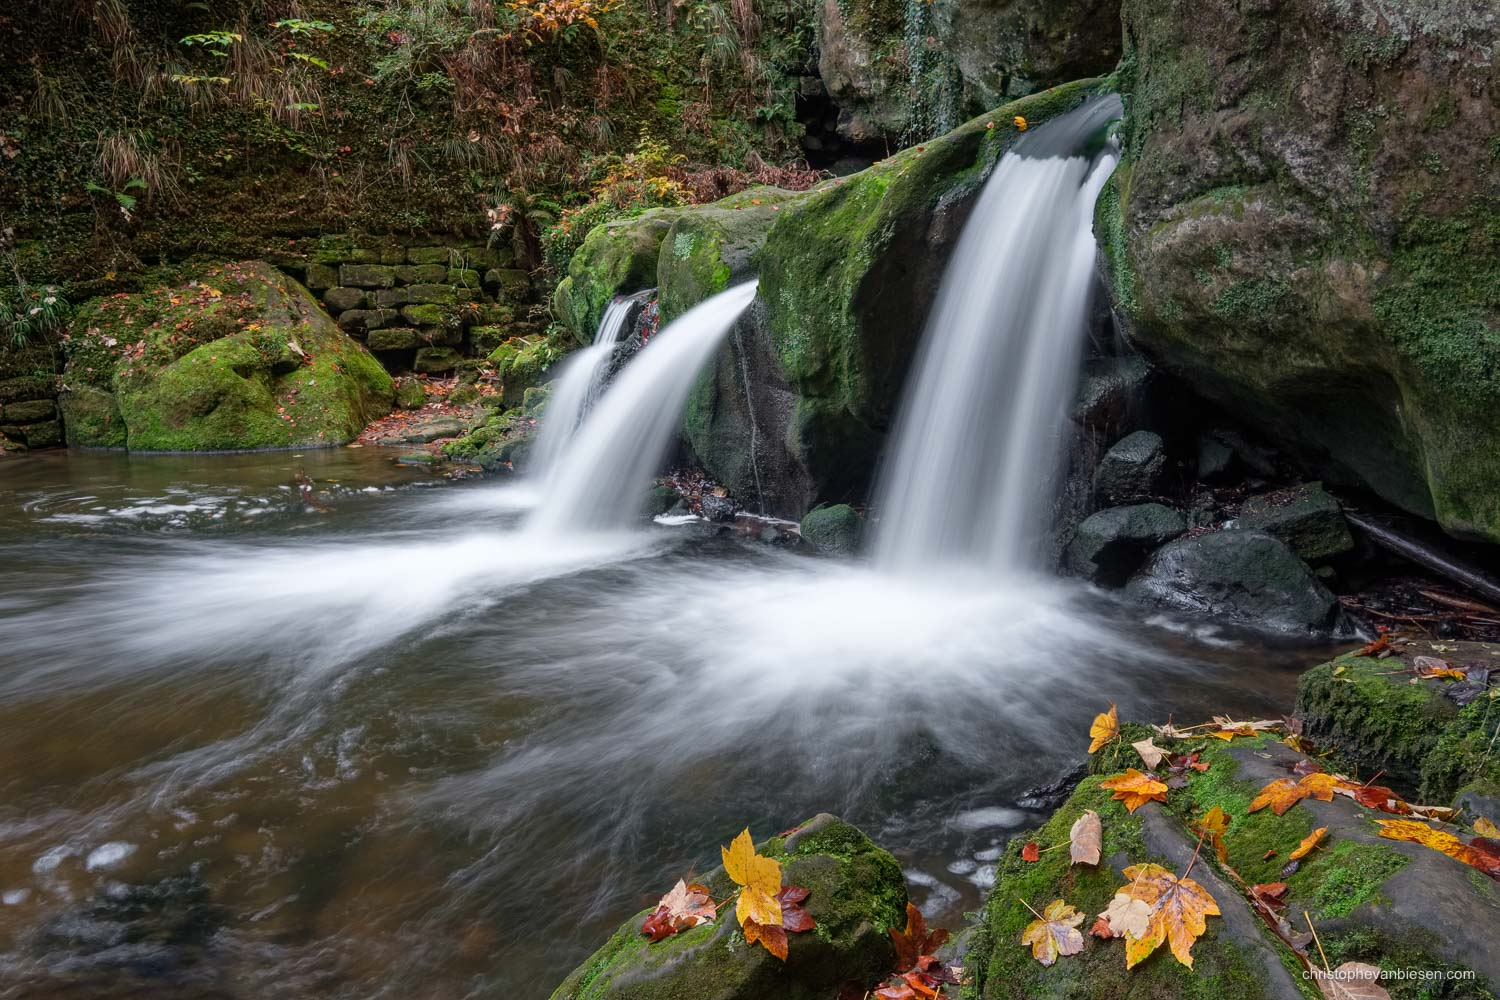 Visit the Mullerthal - Luxembourg - Fall at the Mullerthal's Schiessentumpel waterfall - Roaring Waters